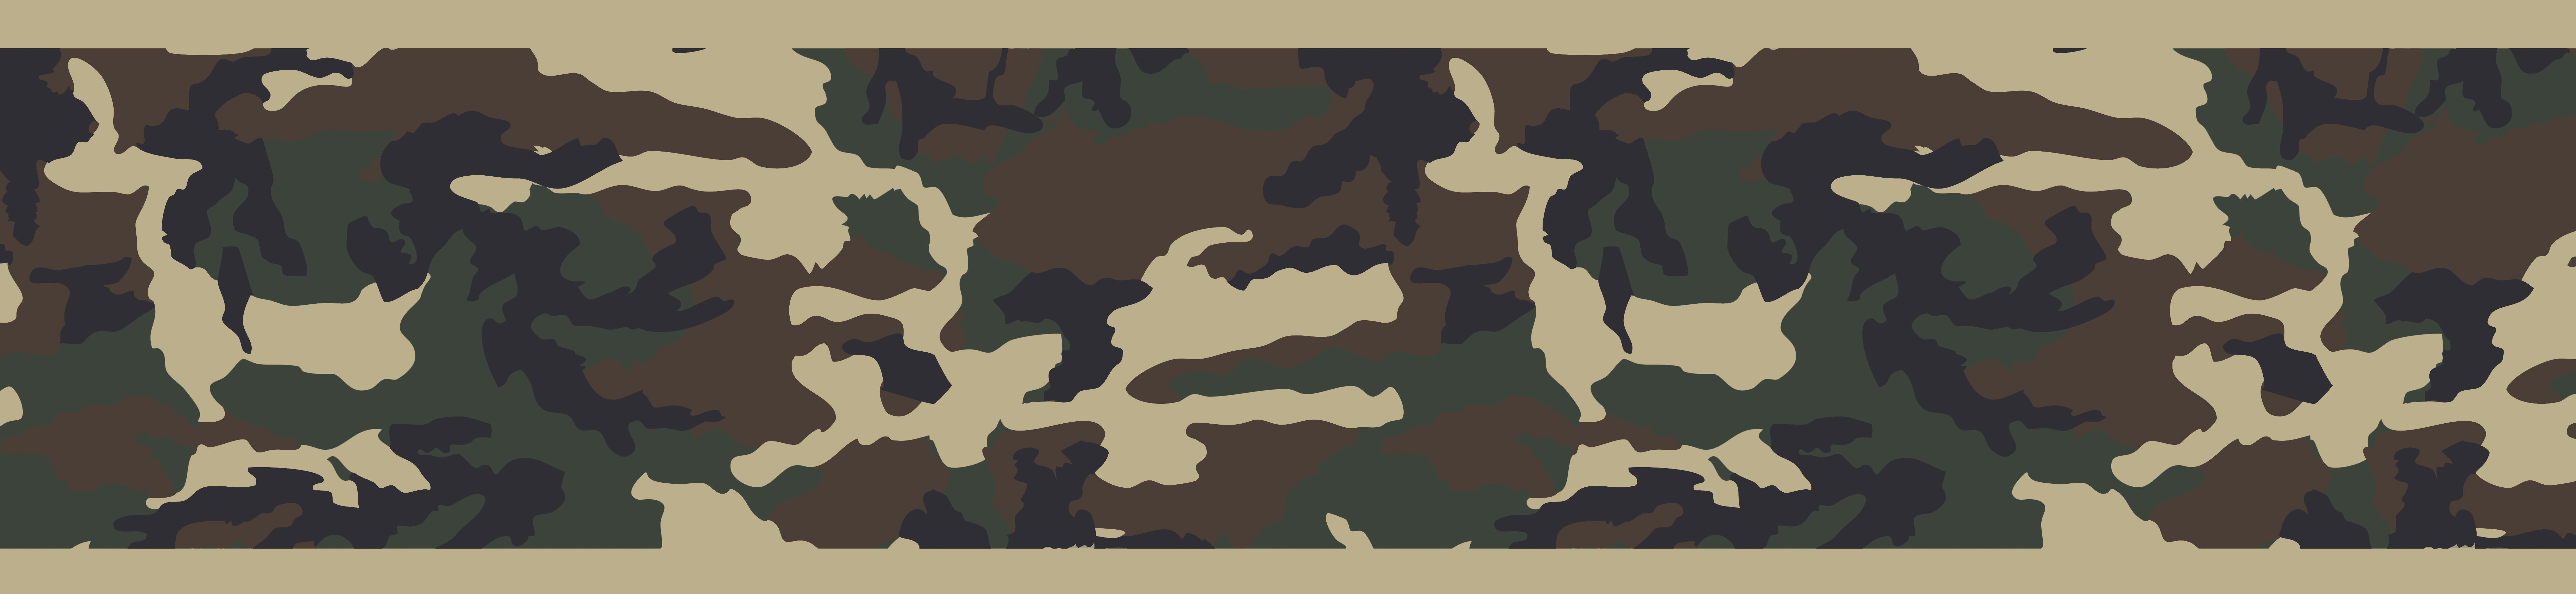 Sweet Jojo Designs Camo 15 X 6 Abstract Border Wallpaper